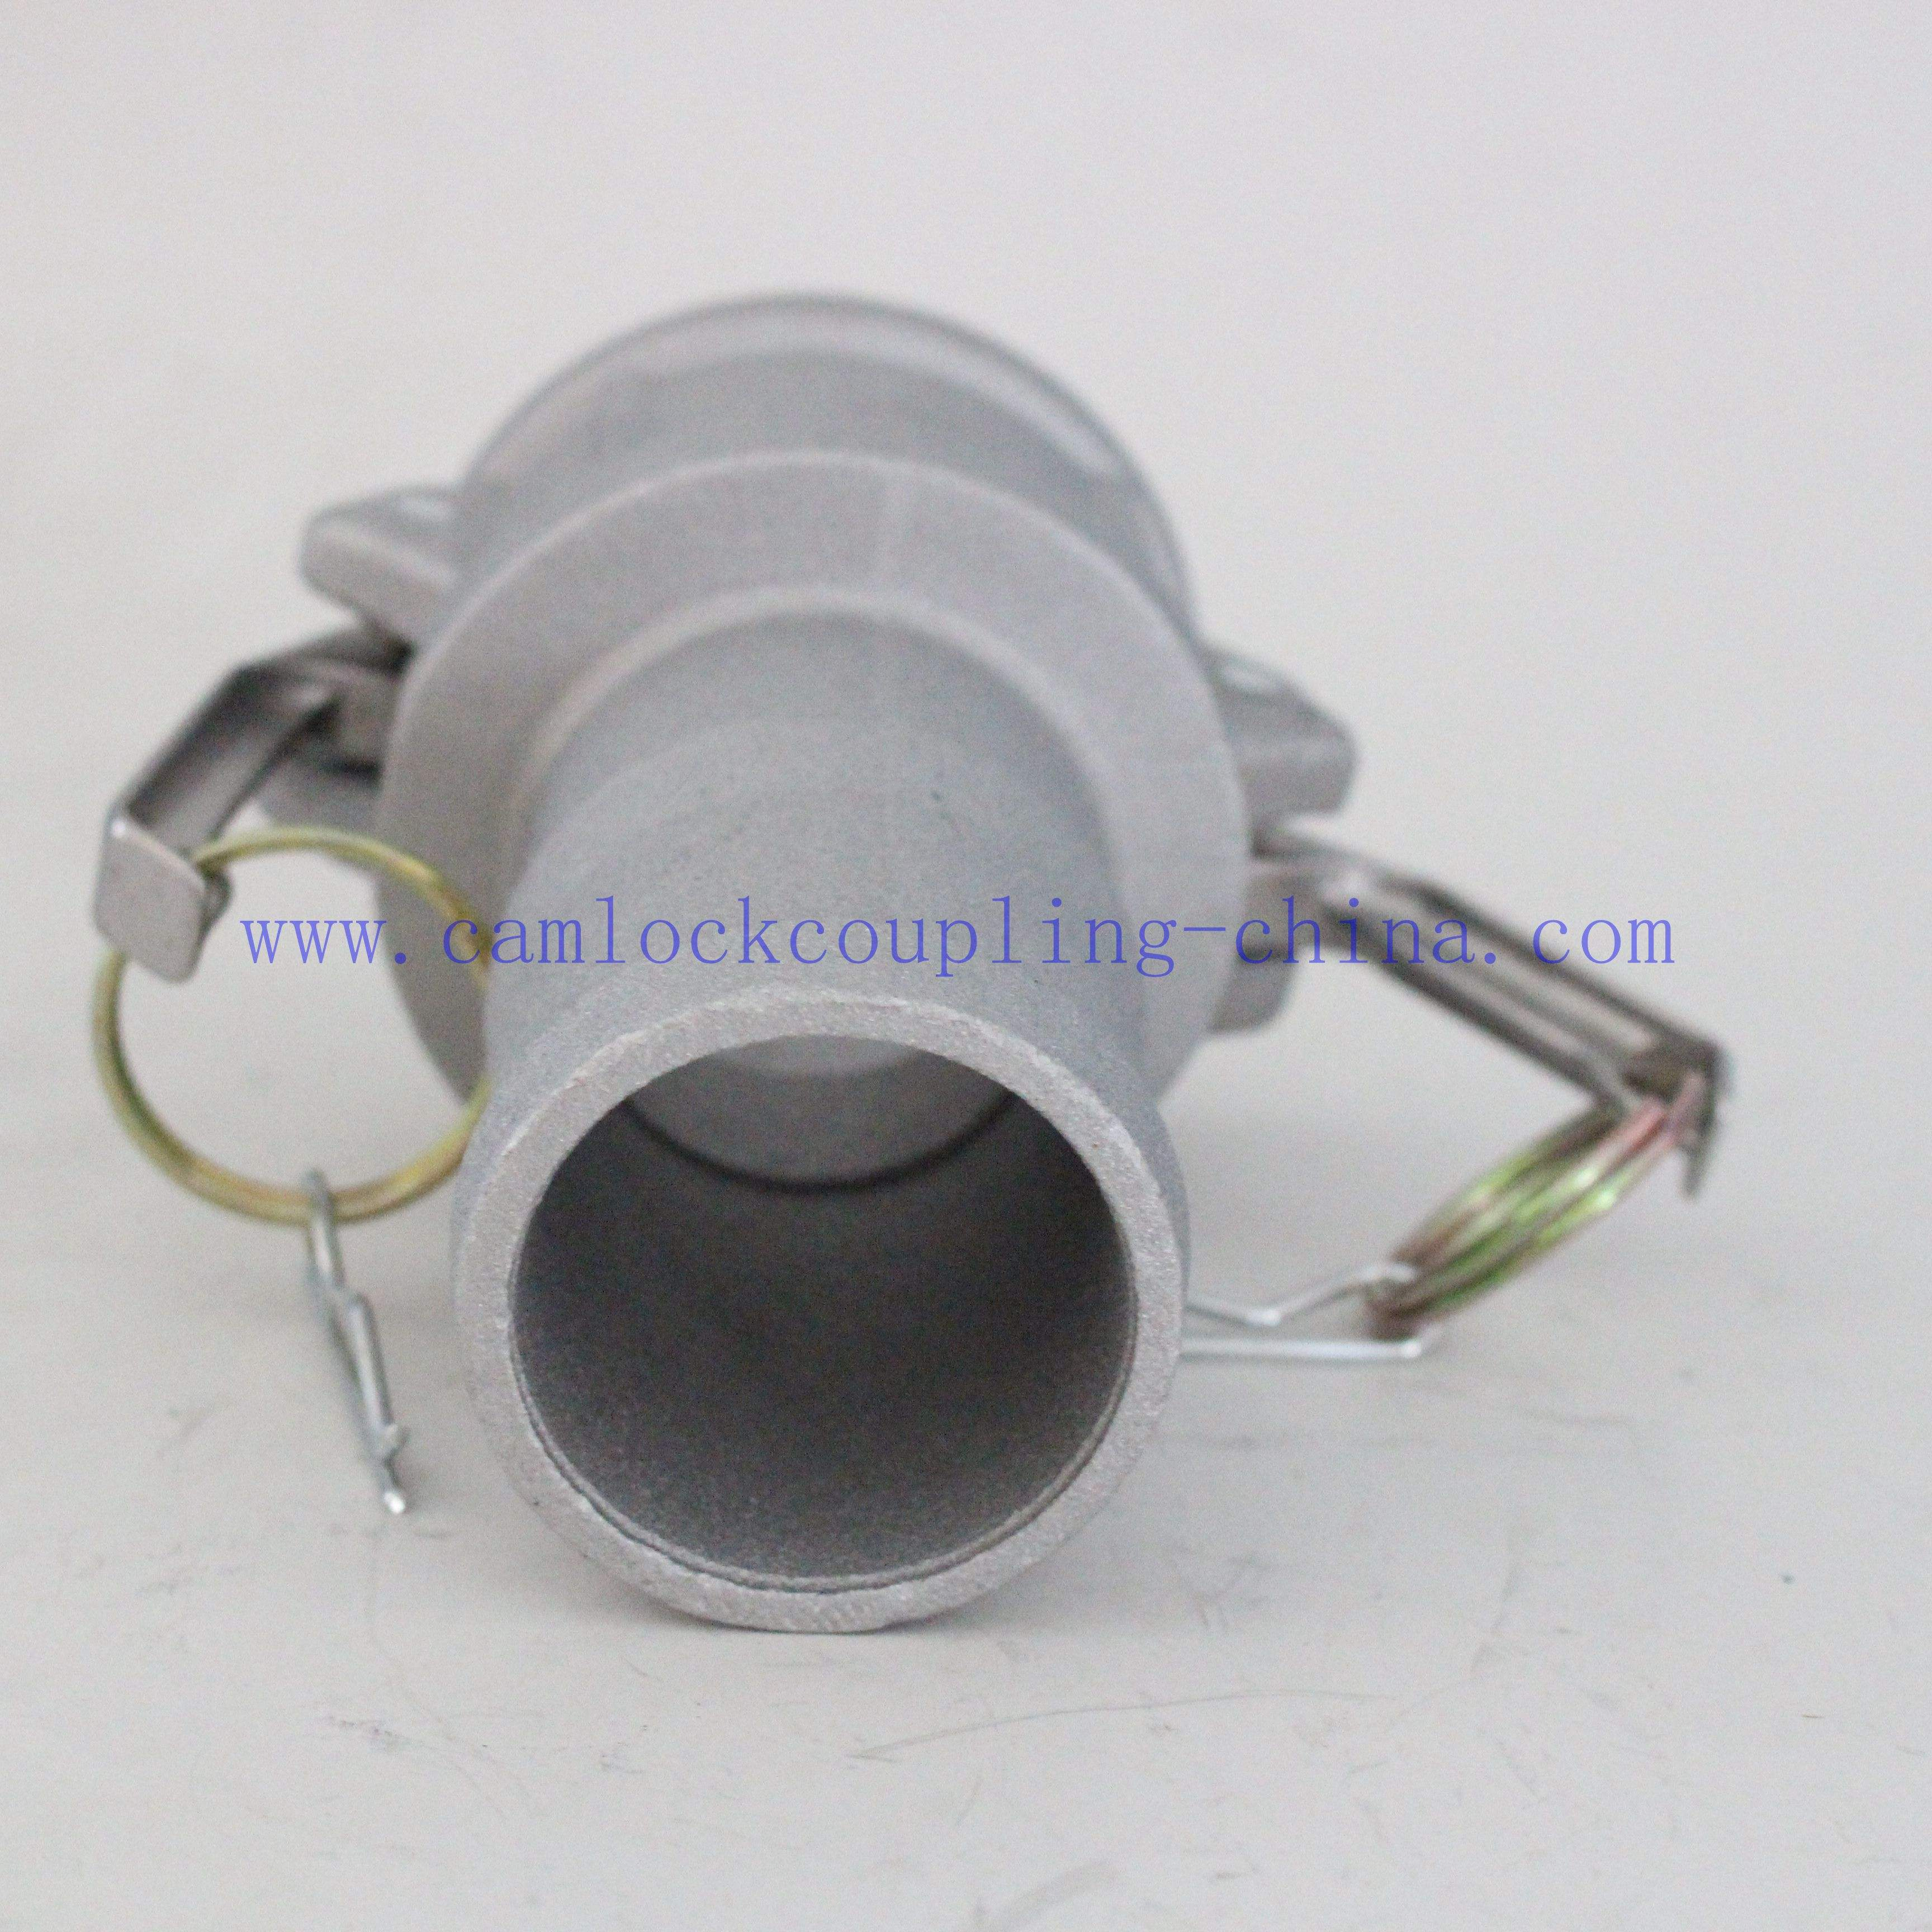 camlock coupling aluminum and quick joint coupling fittings